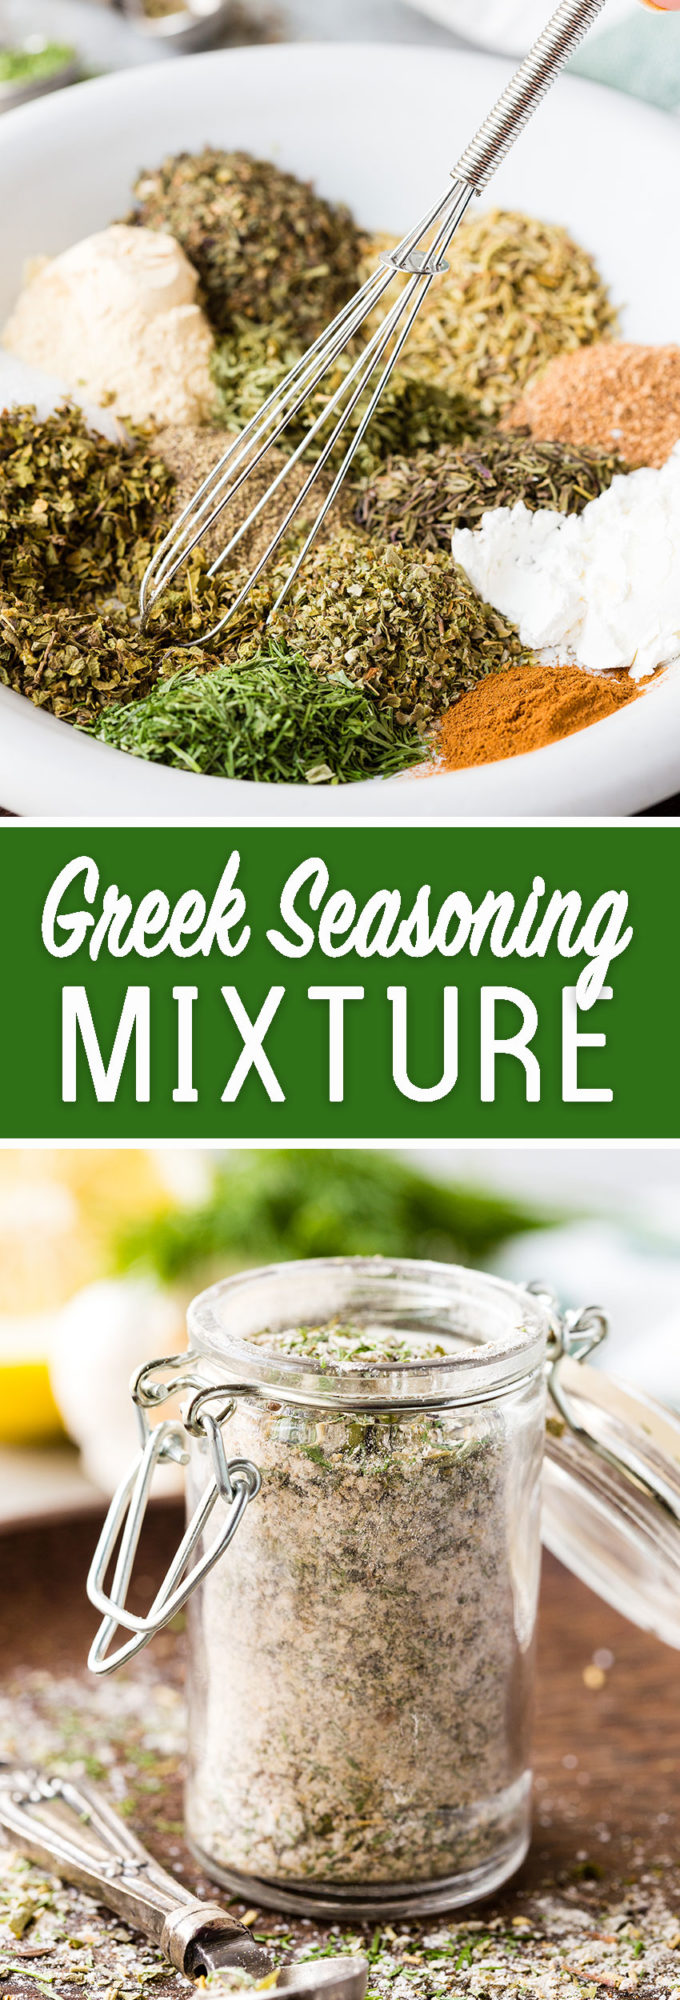 Make your own greek seasoning mixture or greek spice blend and skip all the added junk! Delicious